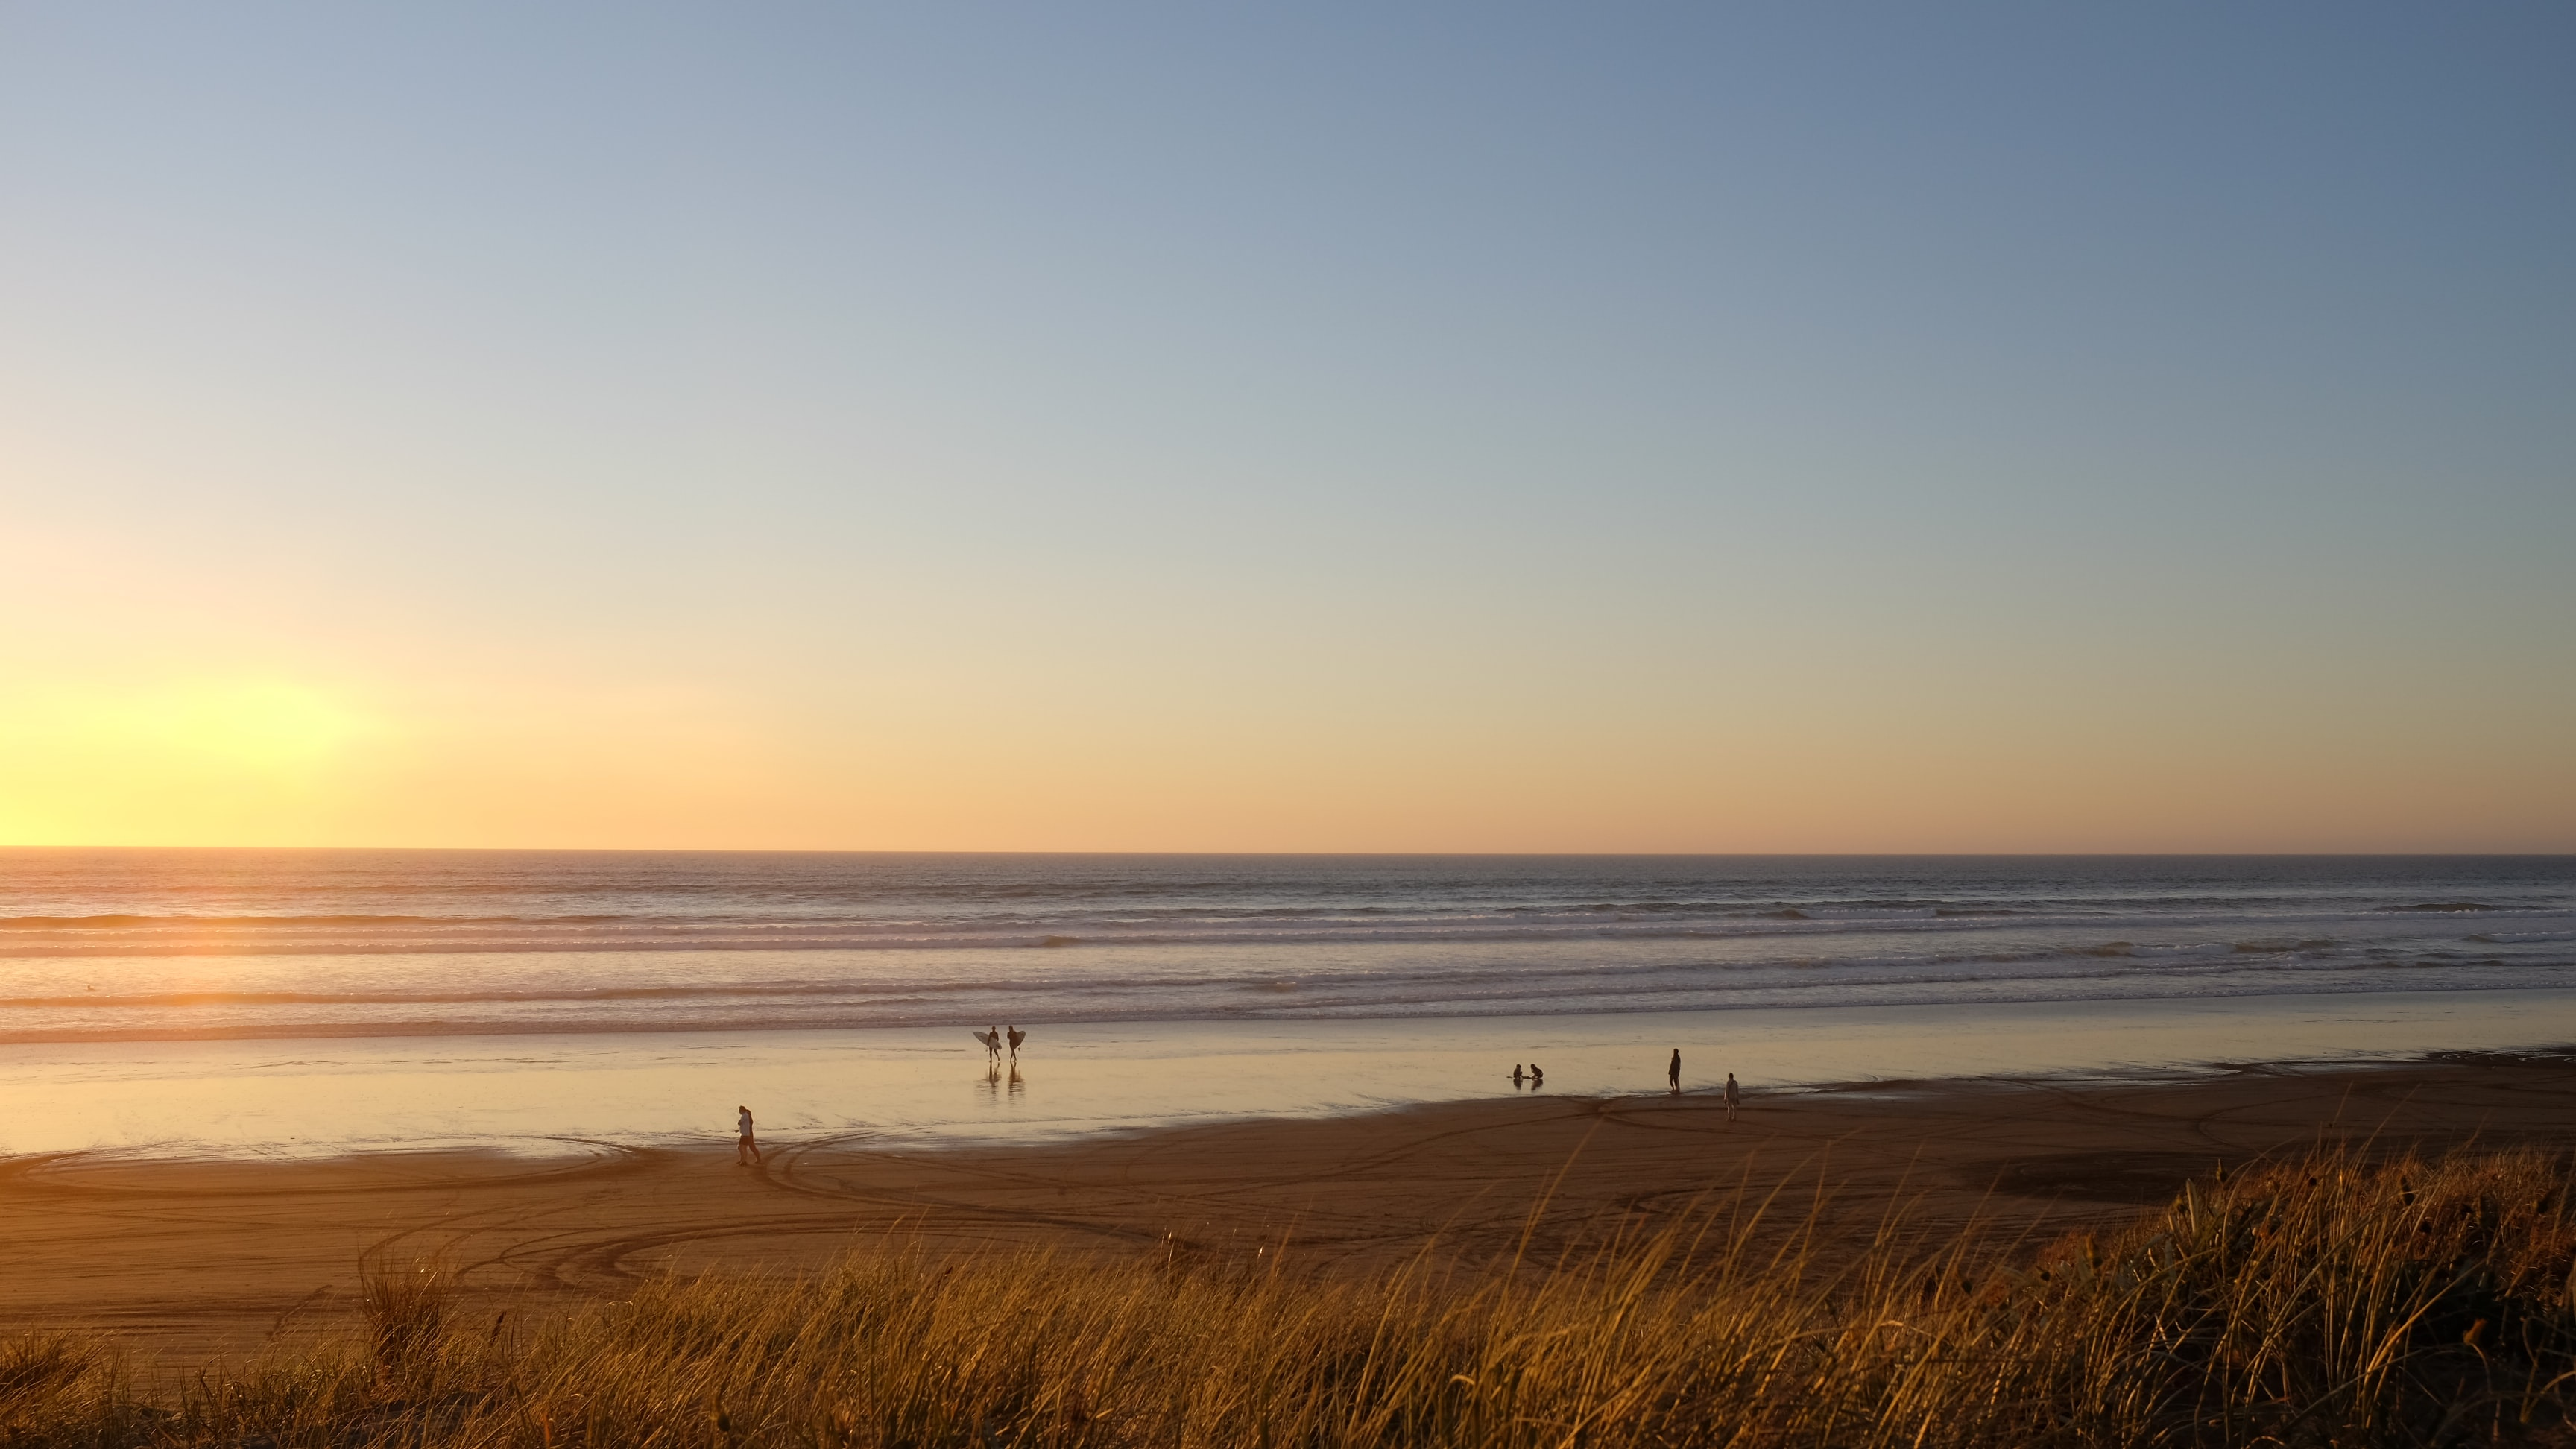 View of the calm ocean horizon and a sandy beach during sunset at Ninety Mile Beach